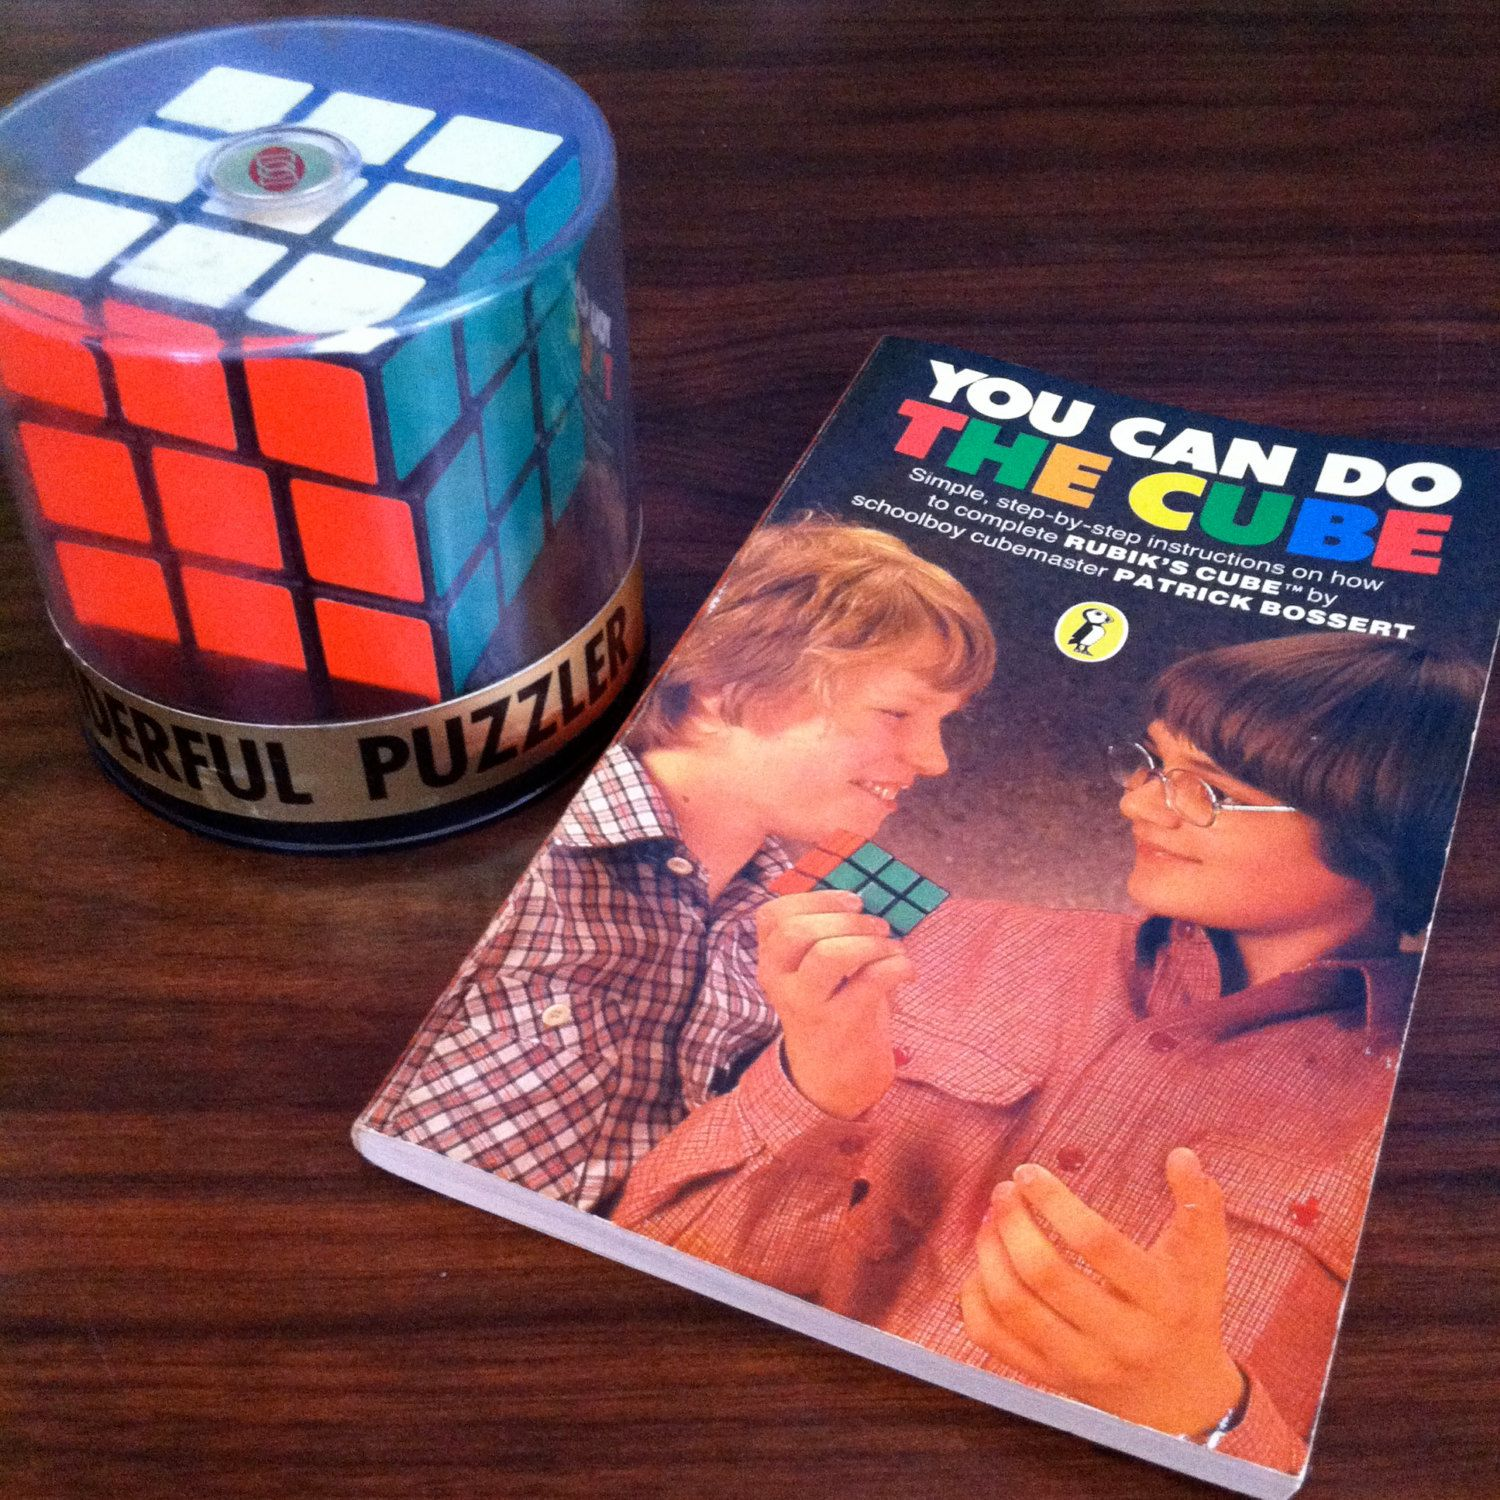 Good Vintage Rubiku0027s Cube U0026 Solution Book You Can Do The Cube By Patrick Bossert  By Theplunderdome Gallery